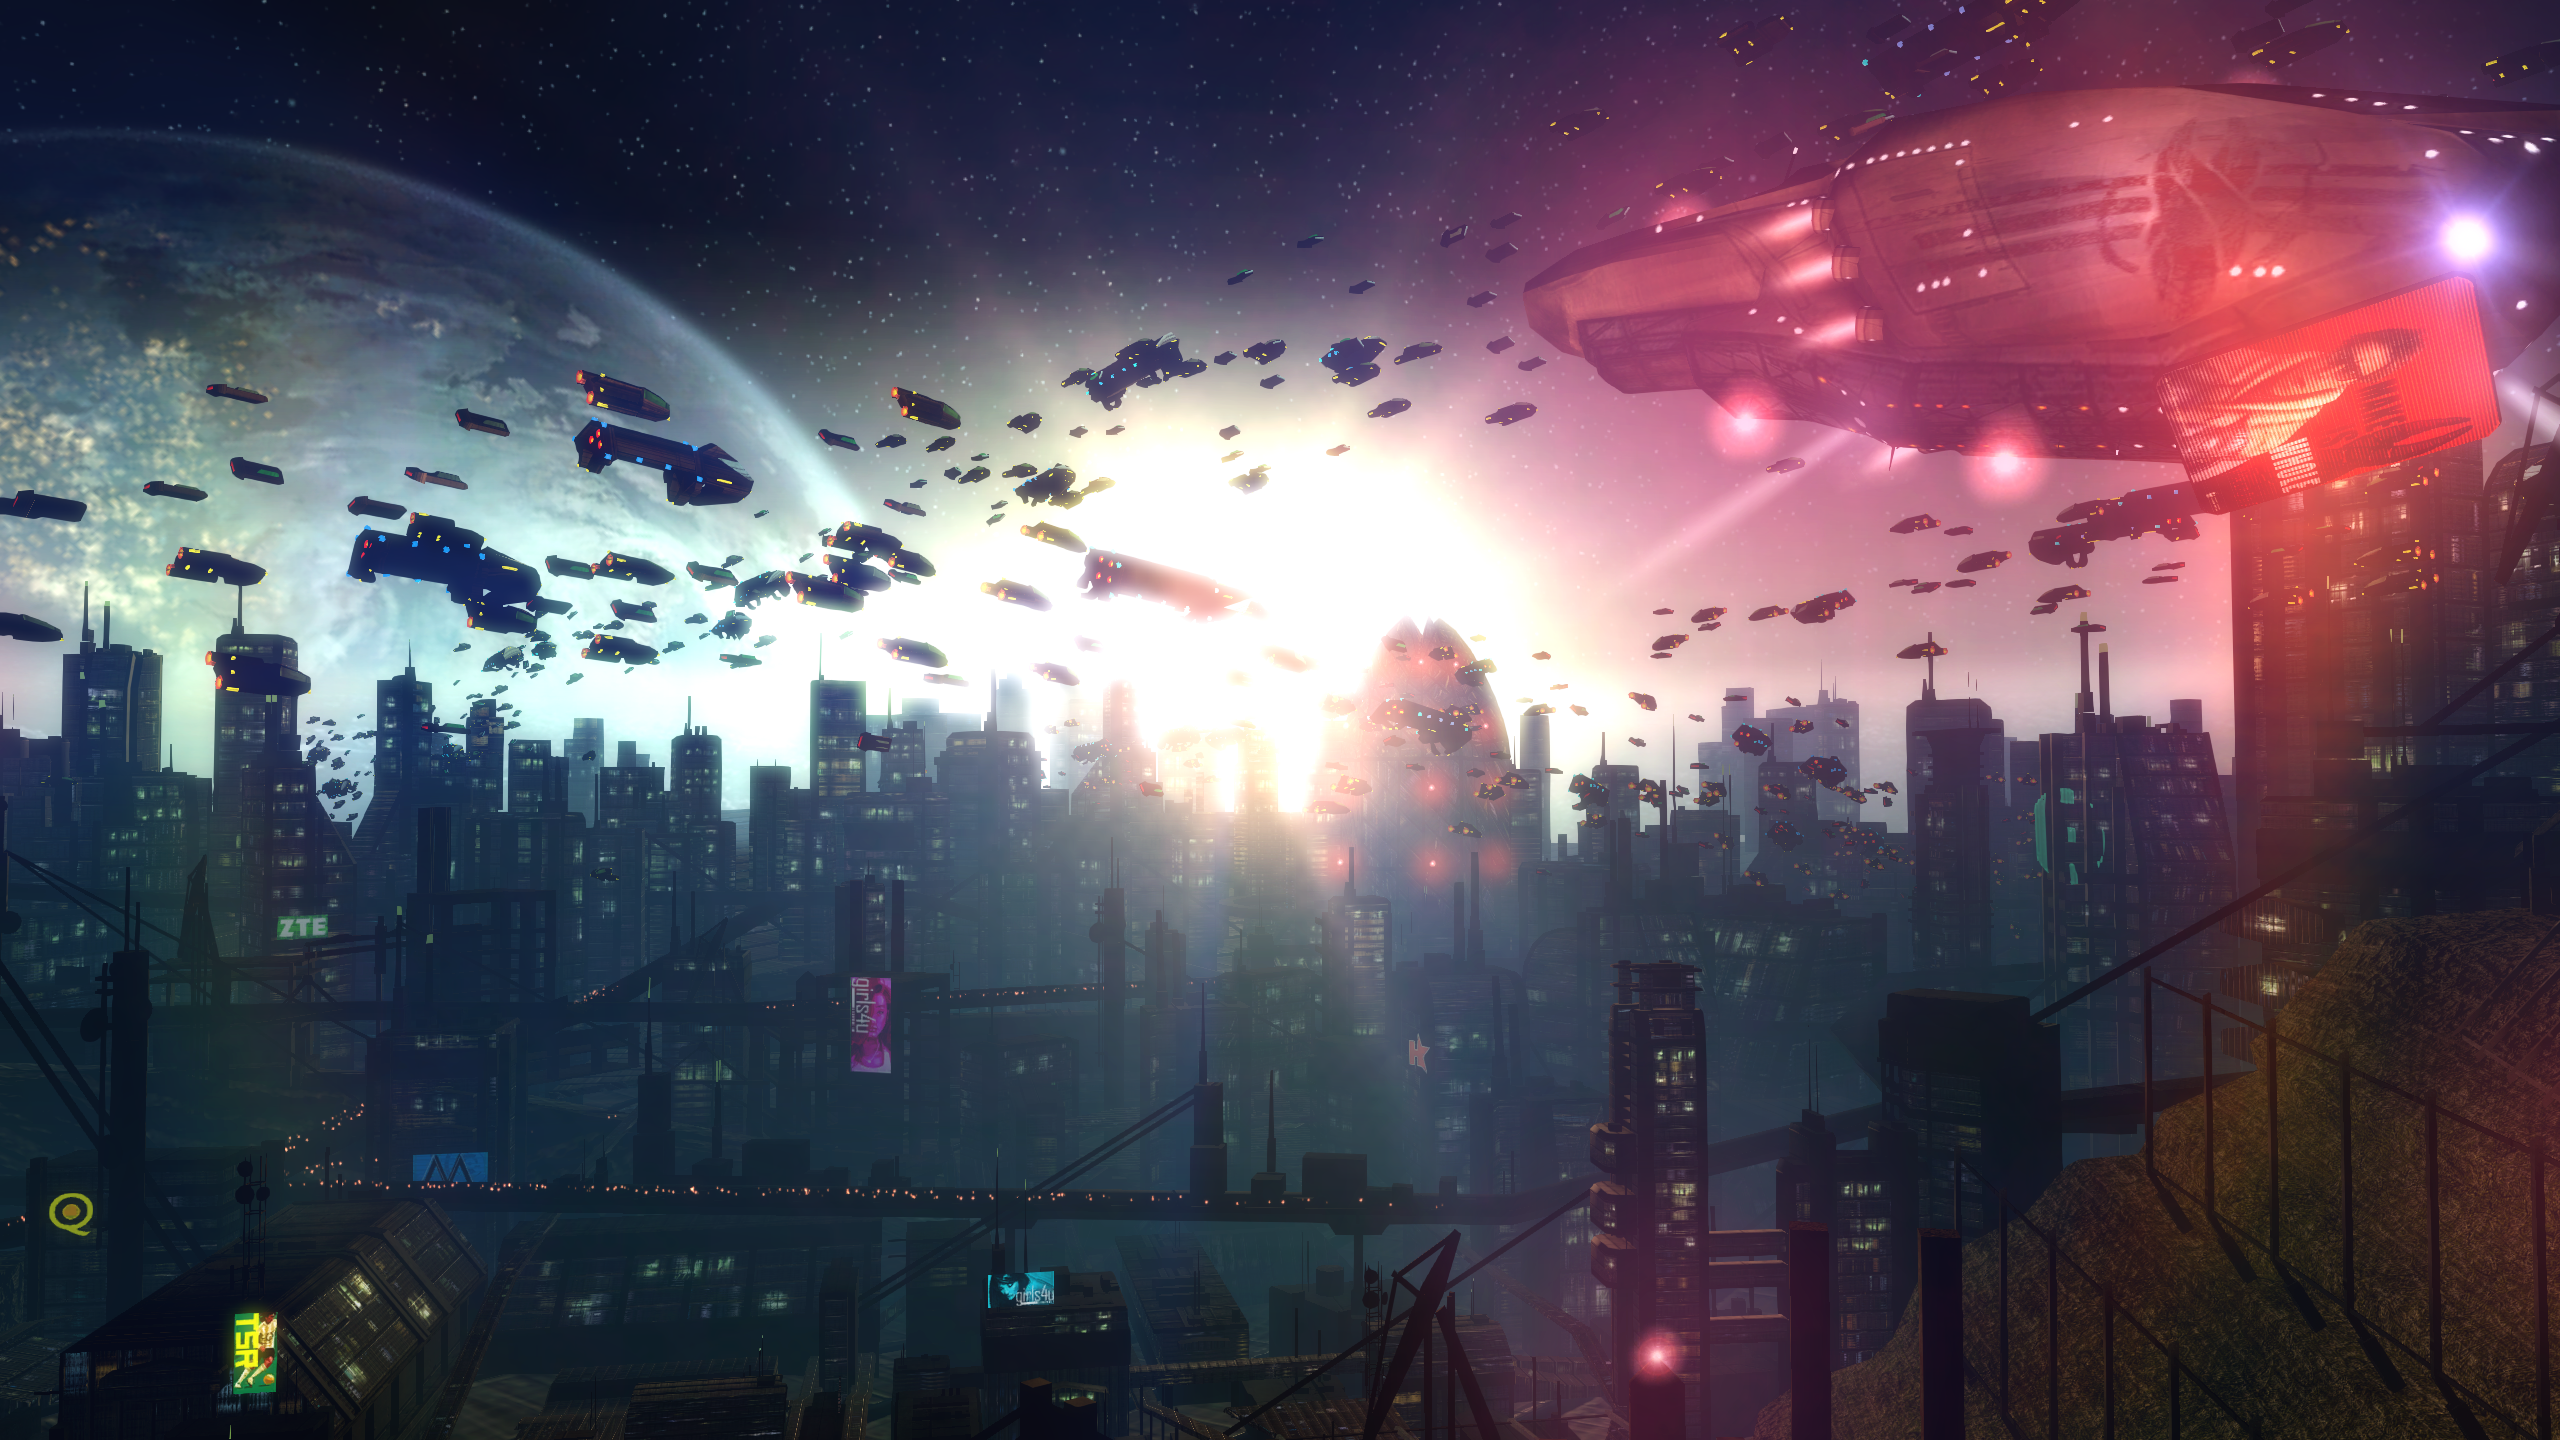 deadspace32013-09-031p3uqa.png